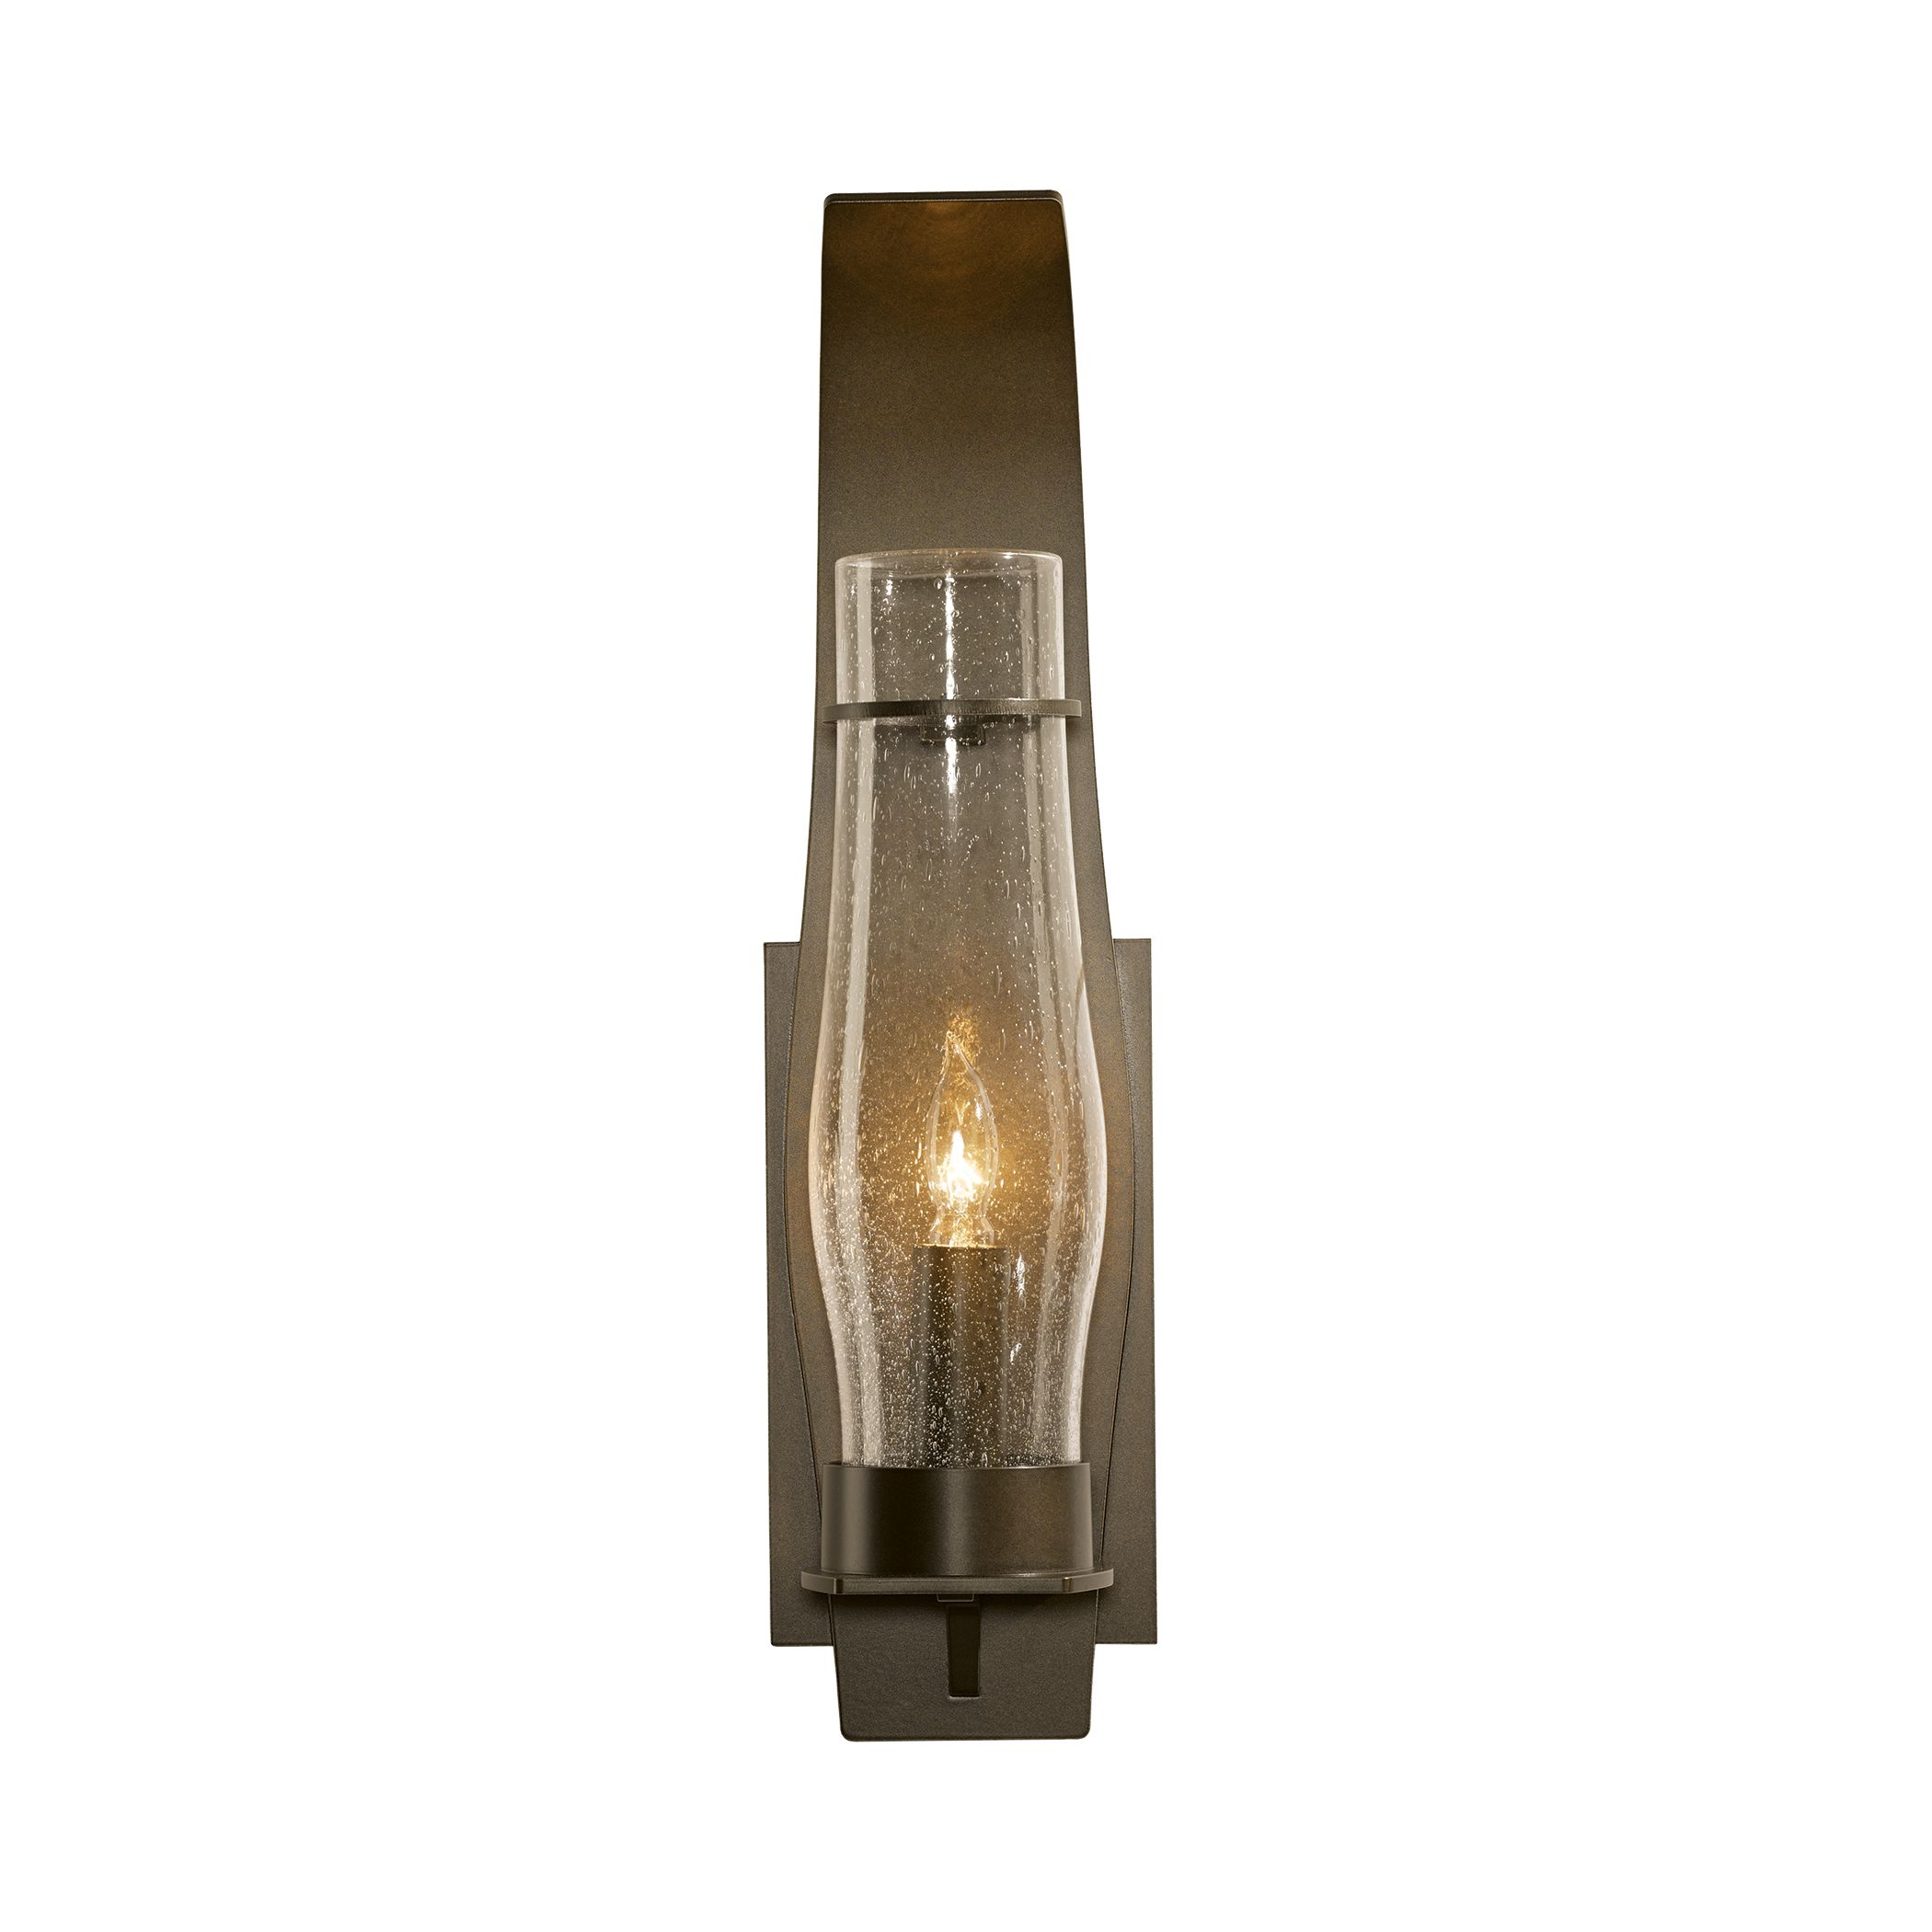 Thumbnail for Sea Coast Large Outdoor Sconce